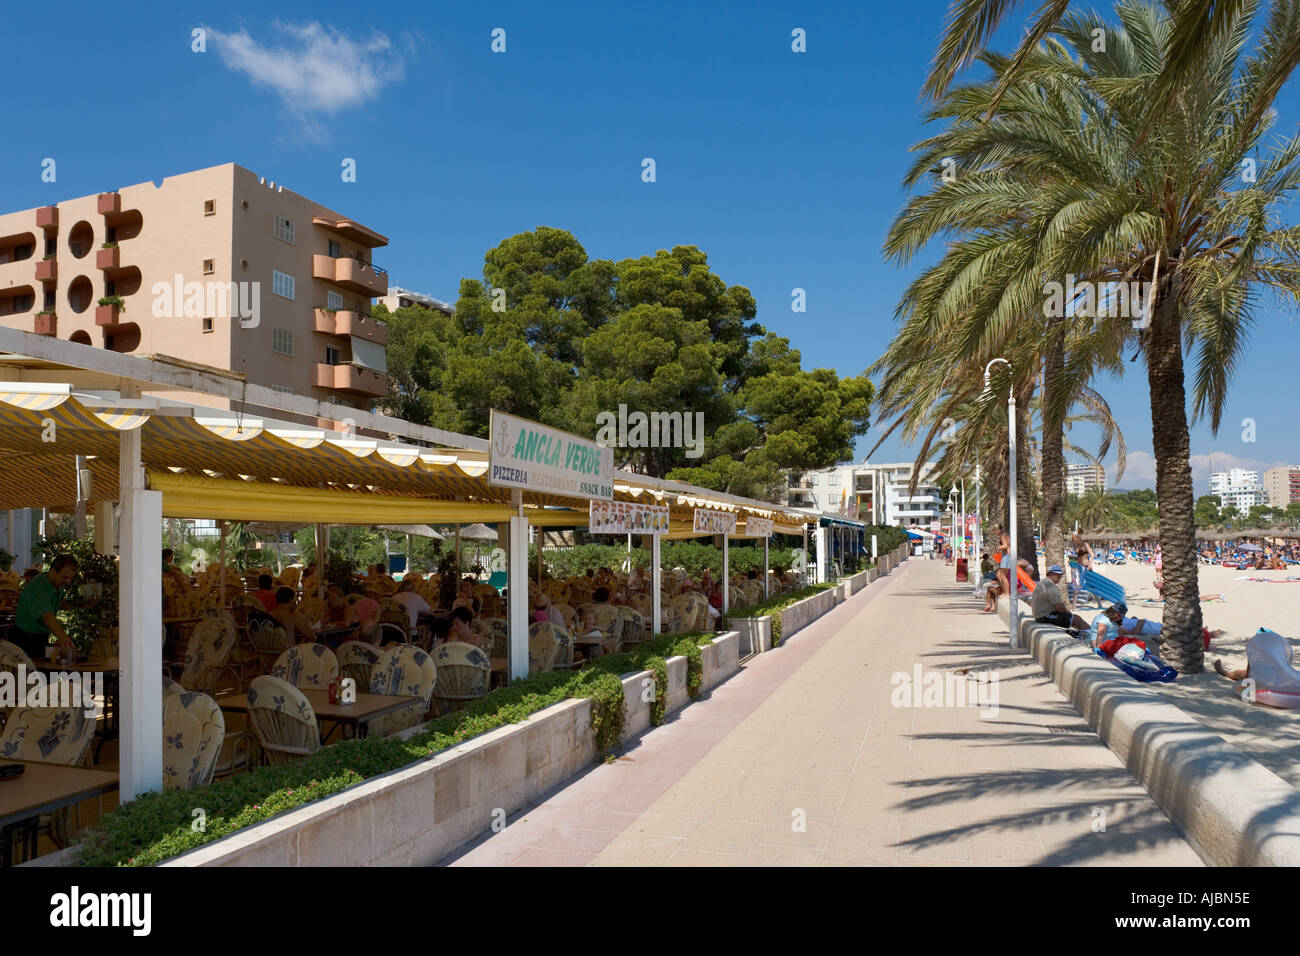 Beachfront Restaurant, Magaluf, Bay of Palma, Mallorca, Balearic Islands, Spain - Stock Image